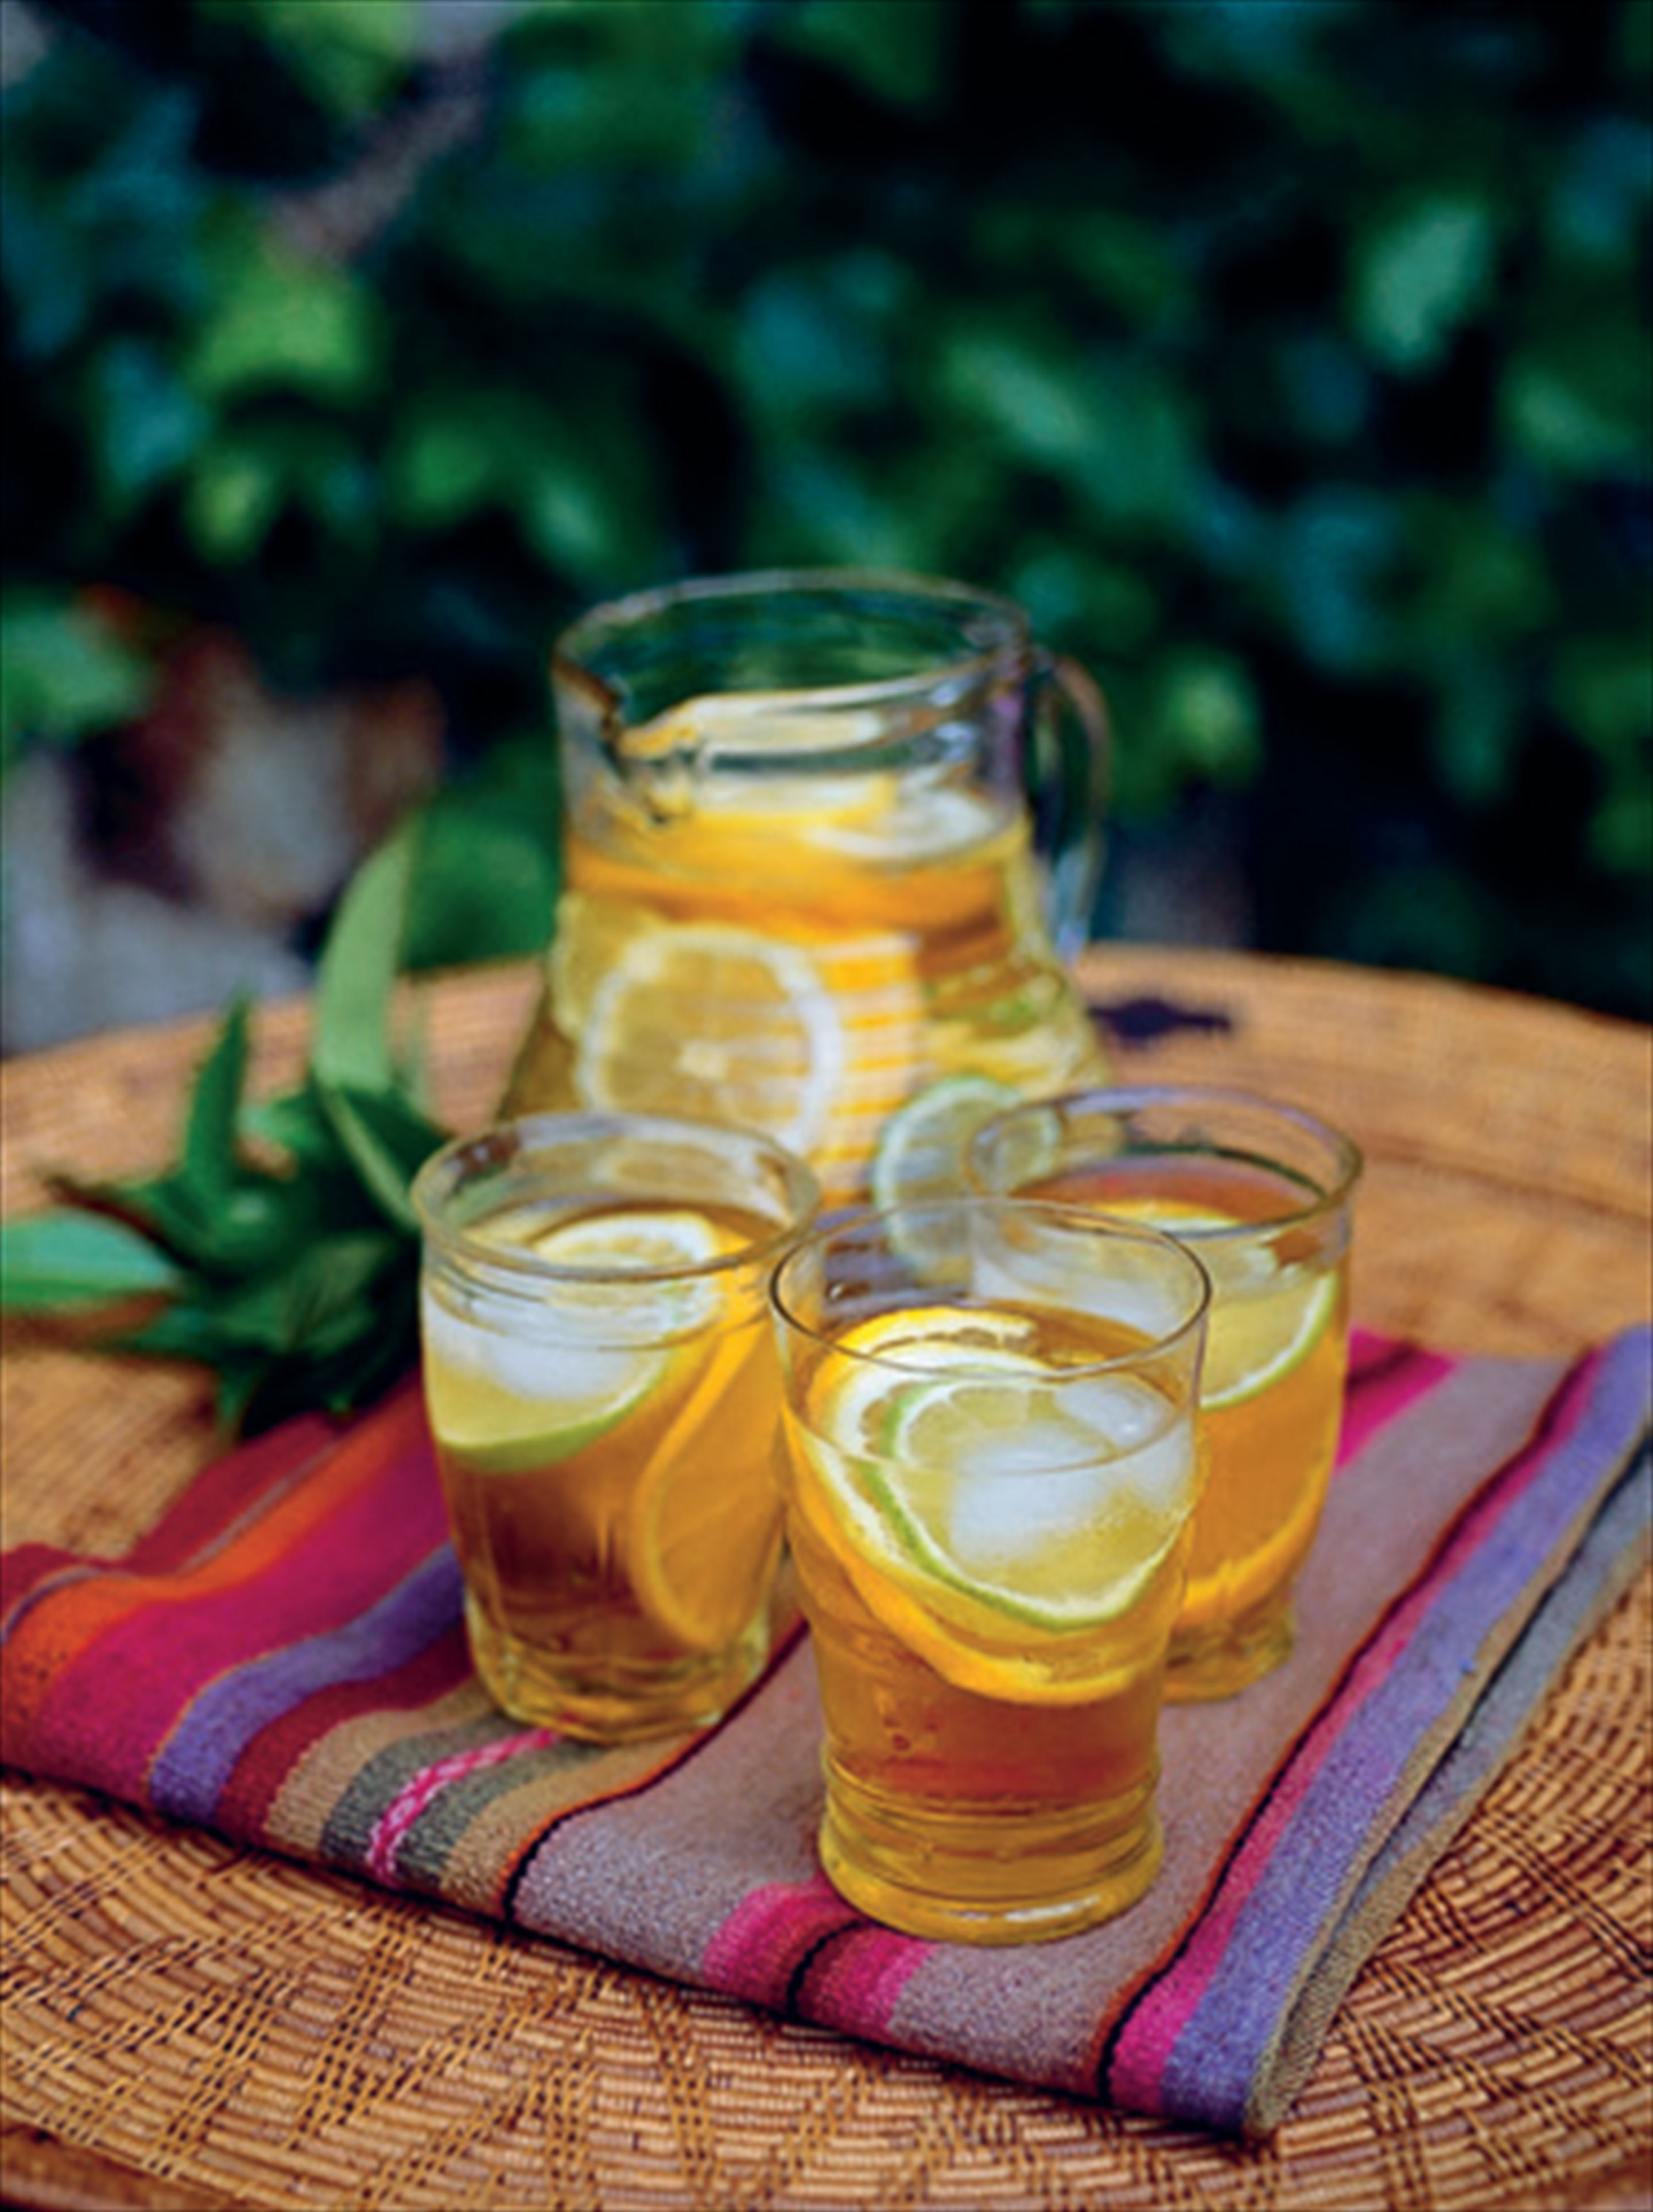 Earl Grey punch with citrus